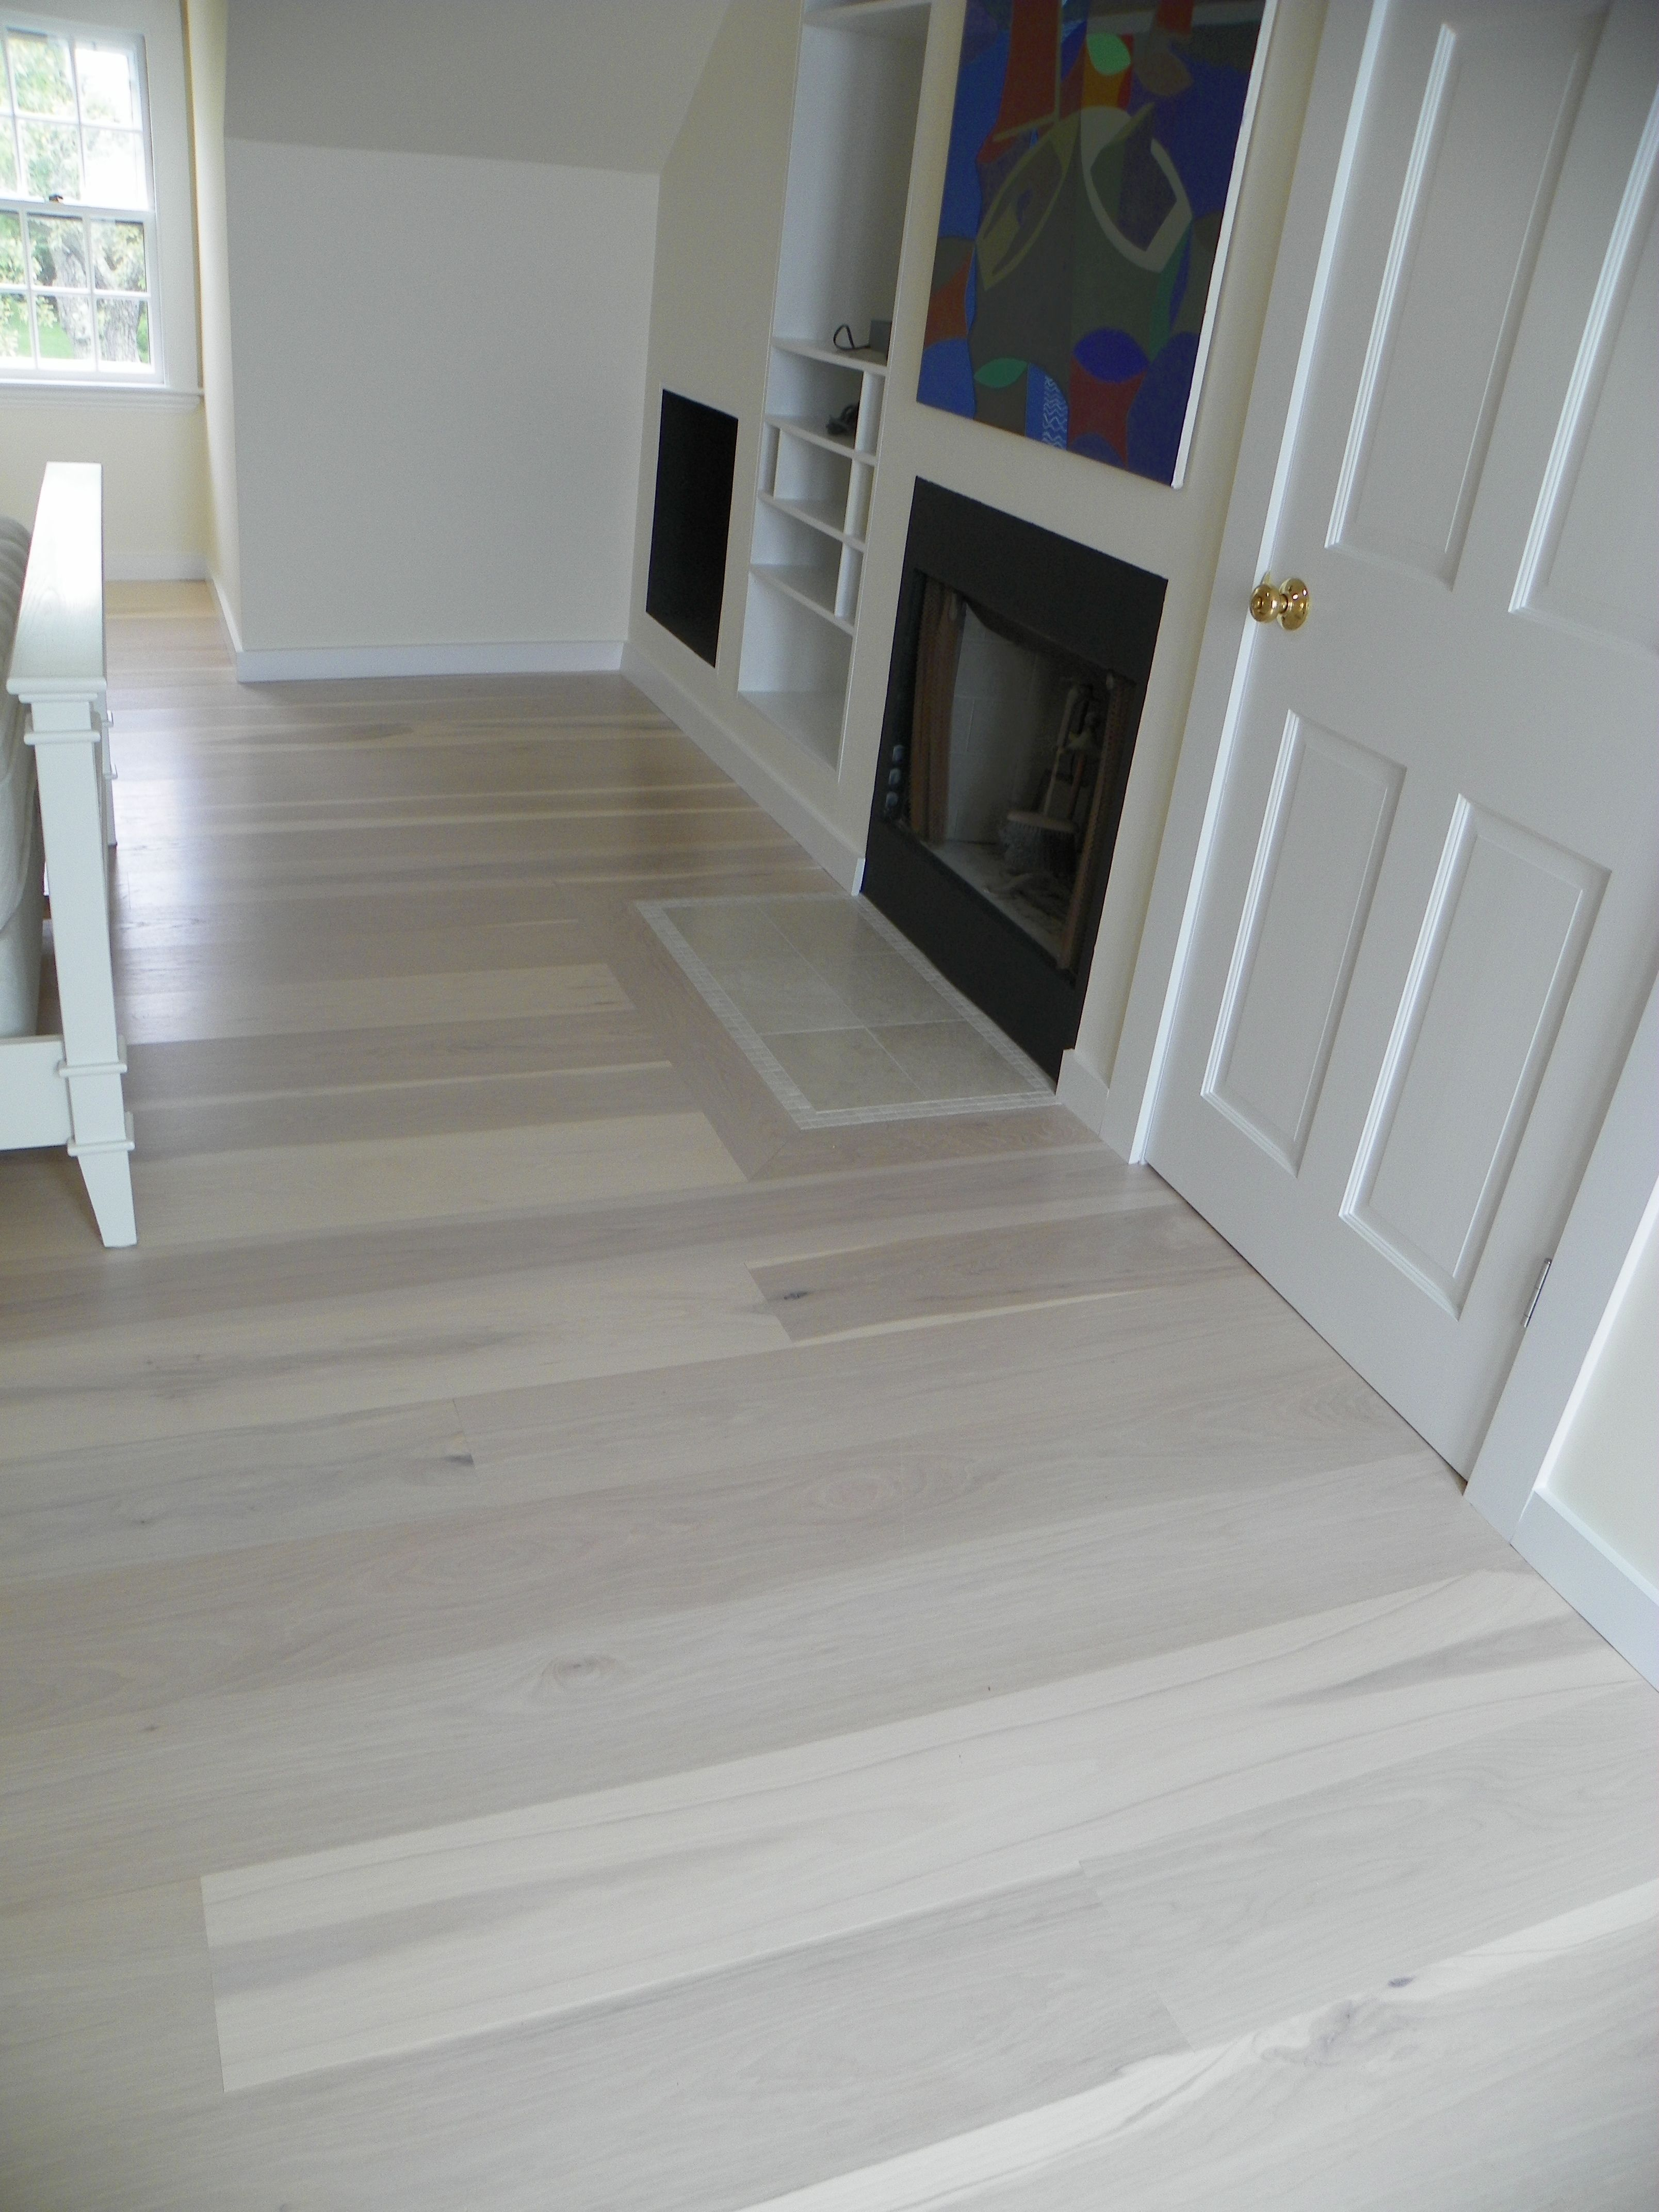 Carlisle Wide Plank Floors Seaside Home Get A Custom Hickory Floor Fit For  The Beach. The Quality Of A Carlisle Floor Is Matched Only By That Of The  ...